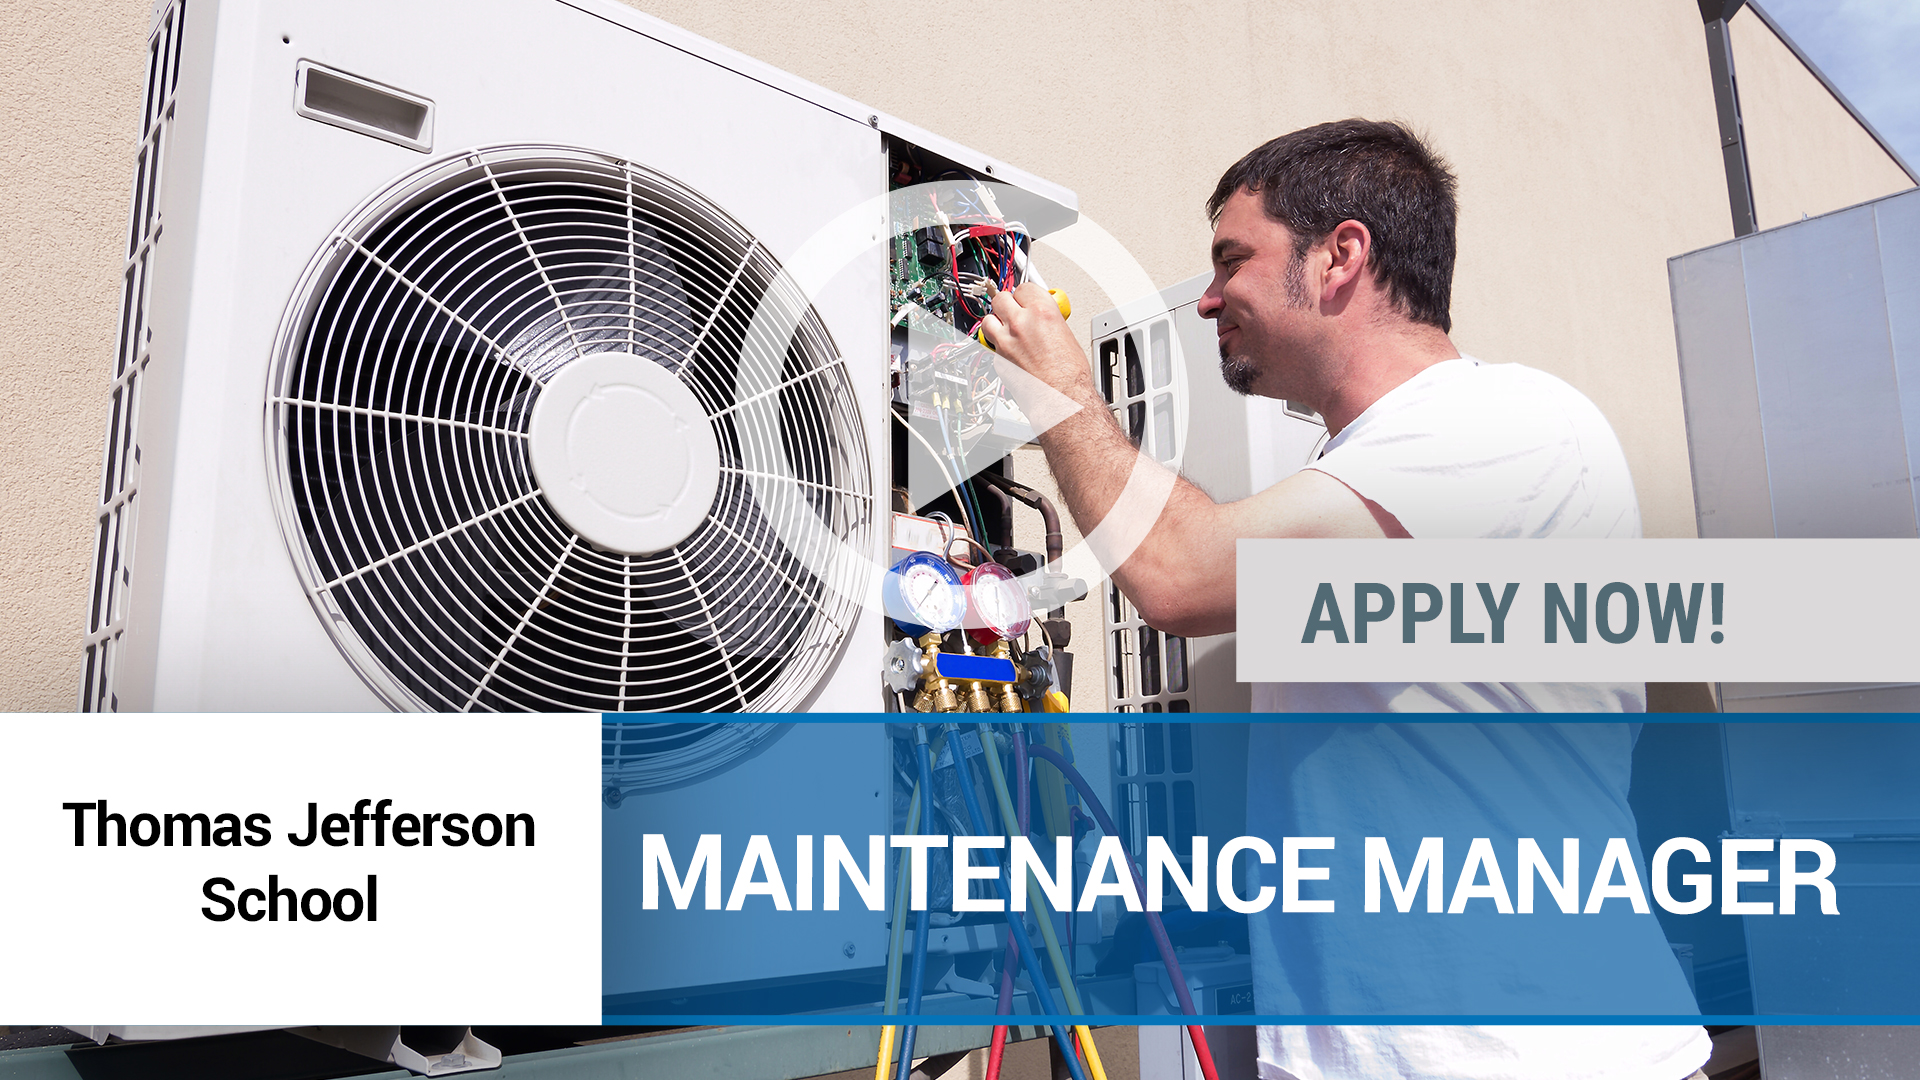 Watch our careers video for available job opening MAINTENANCE MANAGER in Joplin, MO